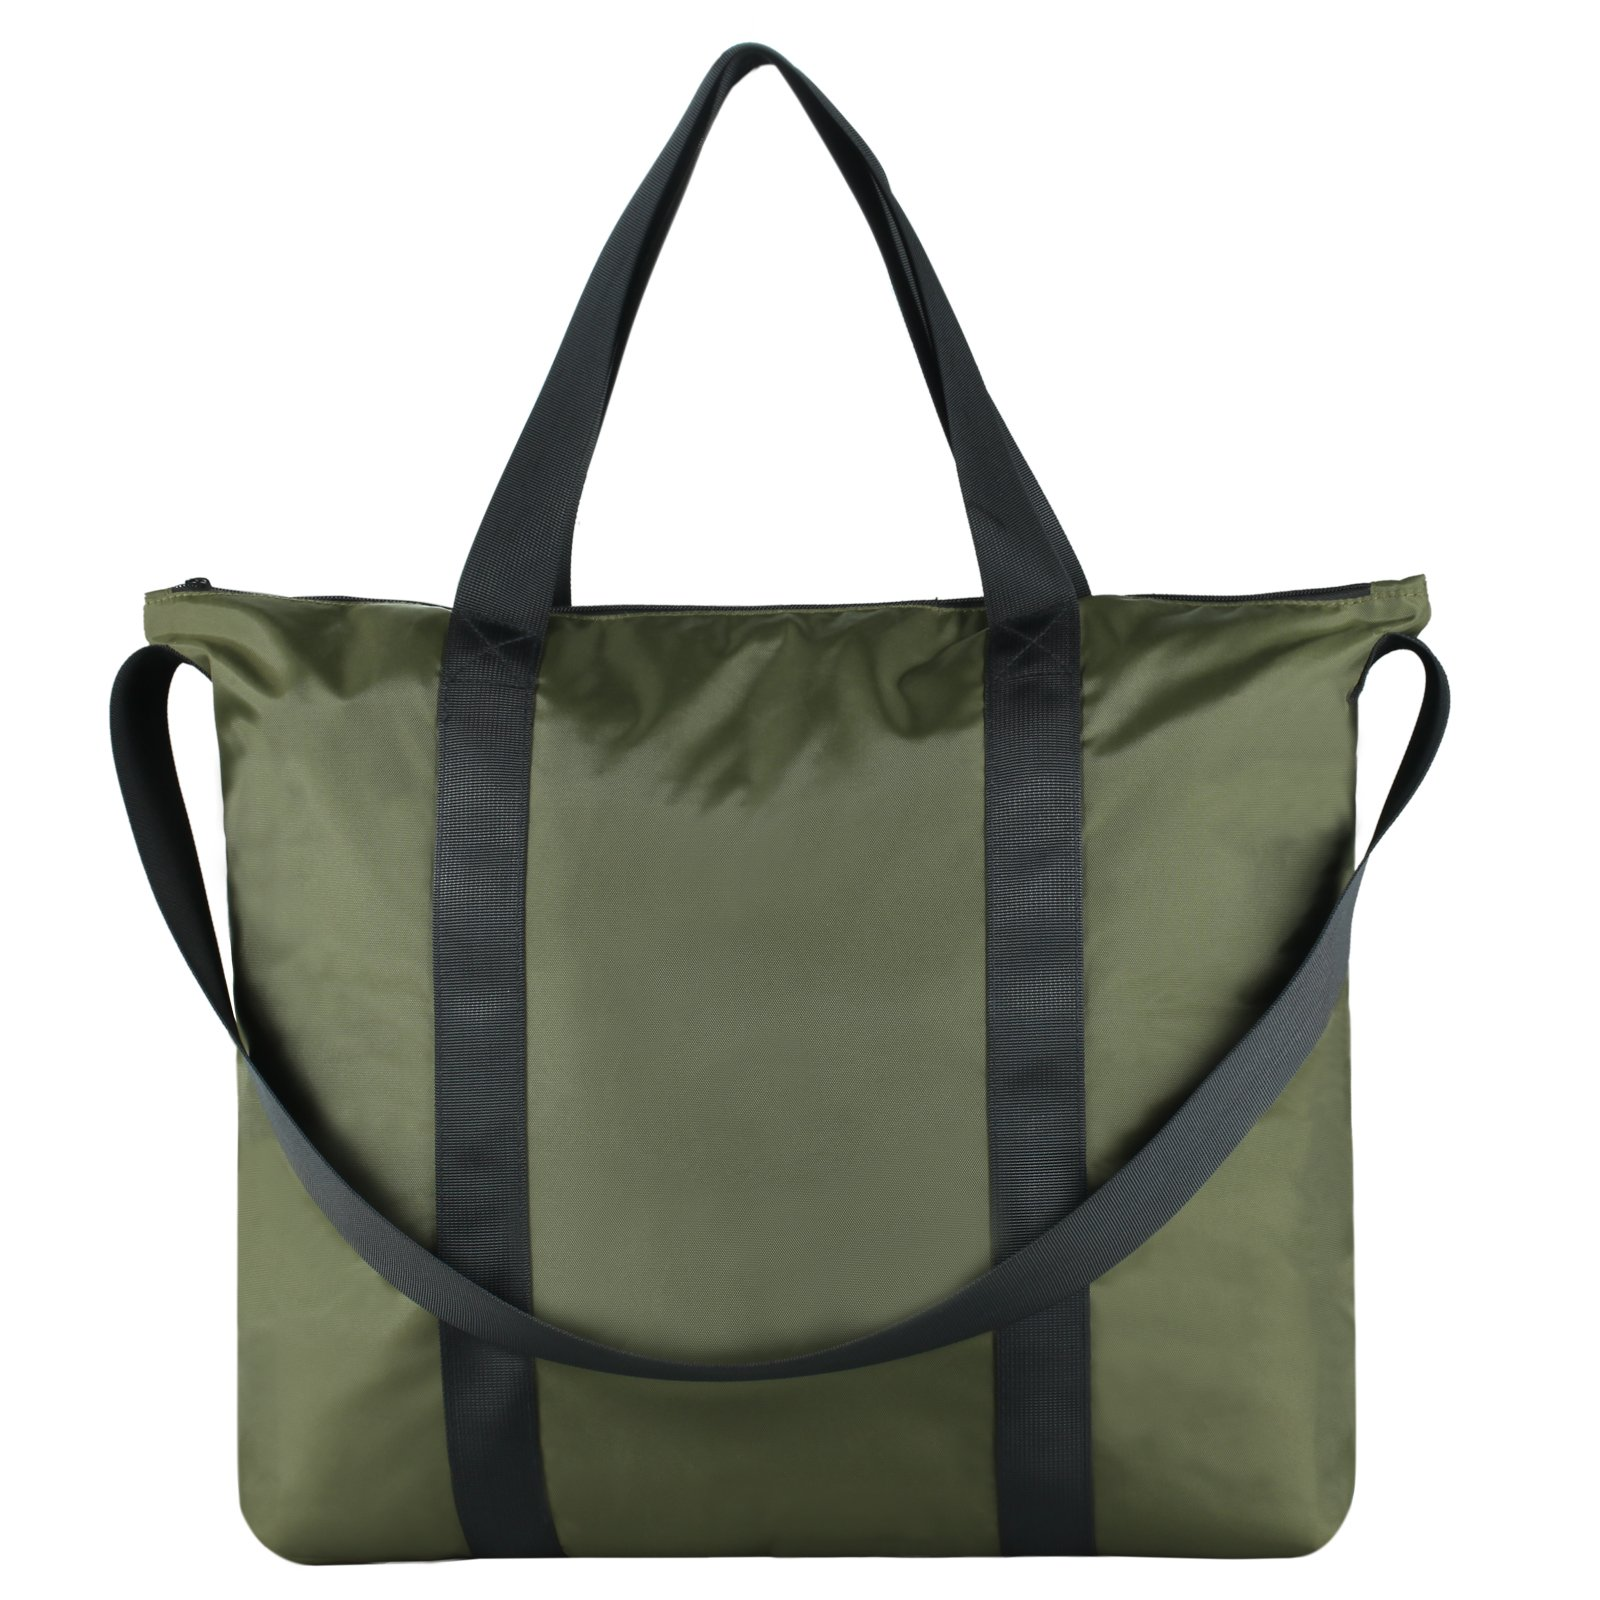 Gym Yoga Tote Bag with Shoulder Strap for Men Women, GOHIGH Big Sport Tote Accessory Fashion Shopping Bags for All Purpose Use, Greenery